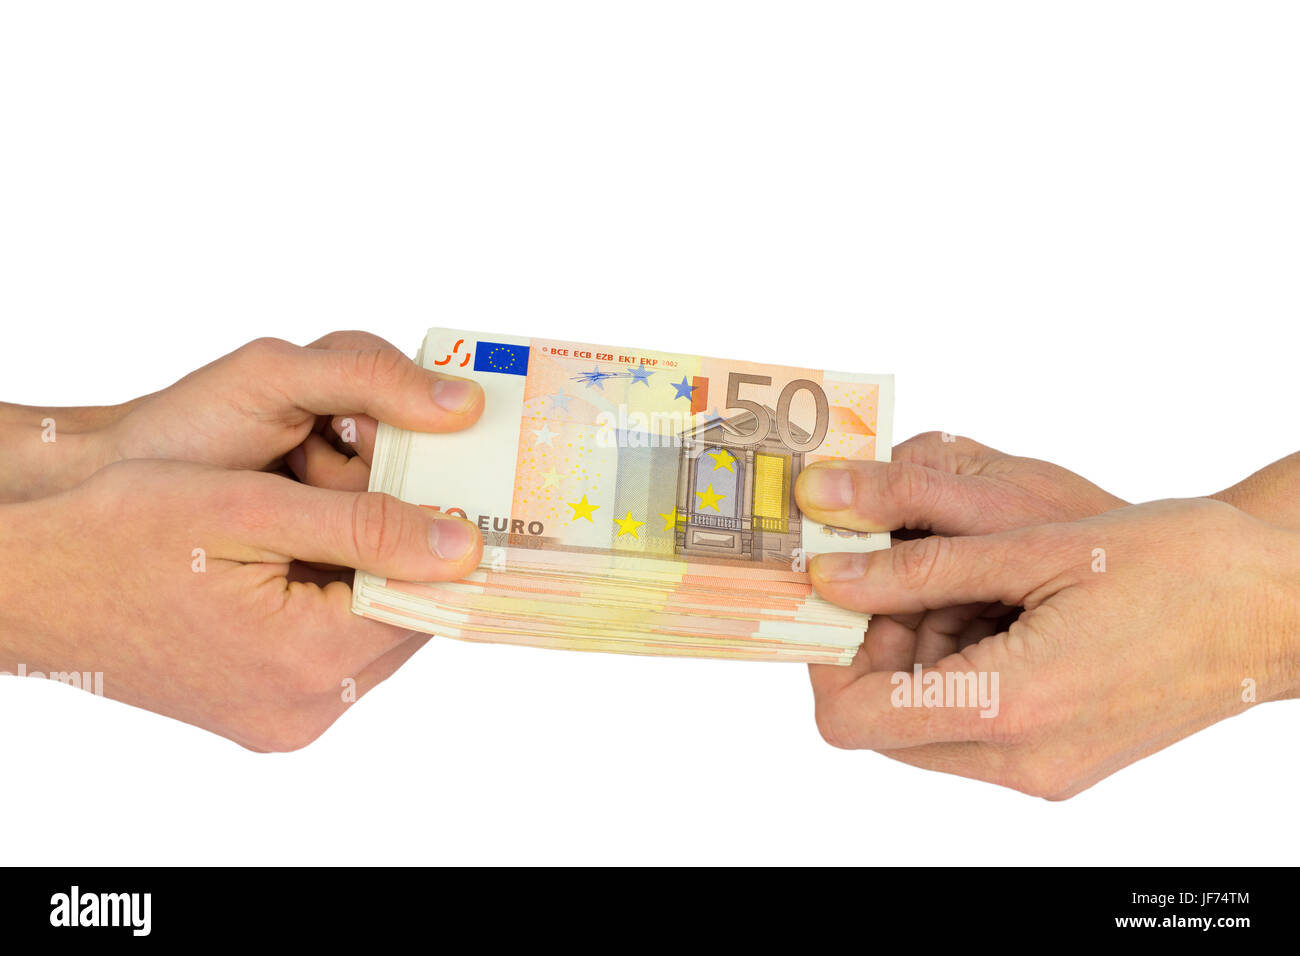 Hands pulling at stack of fifty euro notes - Stock Image